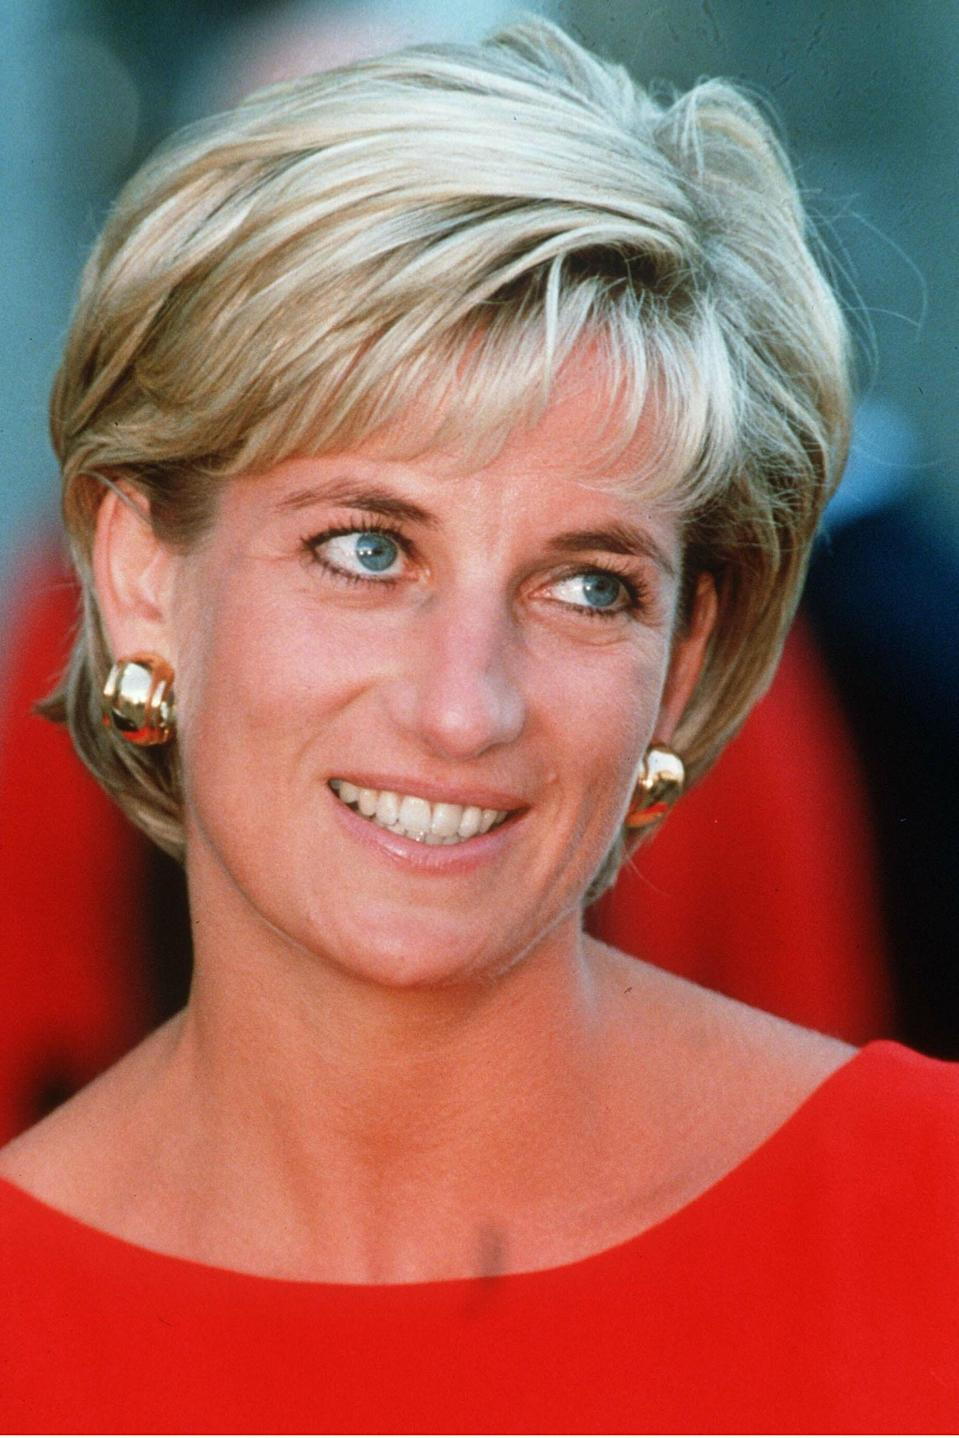 <p>Her last engagement in Britain was at the North Park Children's A&E Unit on July 21st, 1997. For the occasion, Princess Diana donned a striking red shift dress and sported a shorter hairstyle with bangs. <em>[Photo: PA]</em> </p>